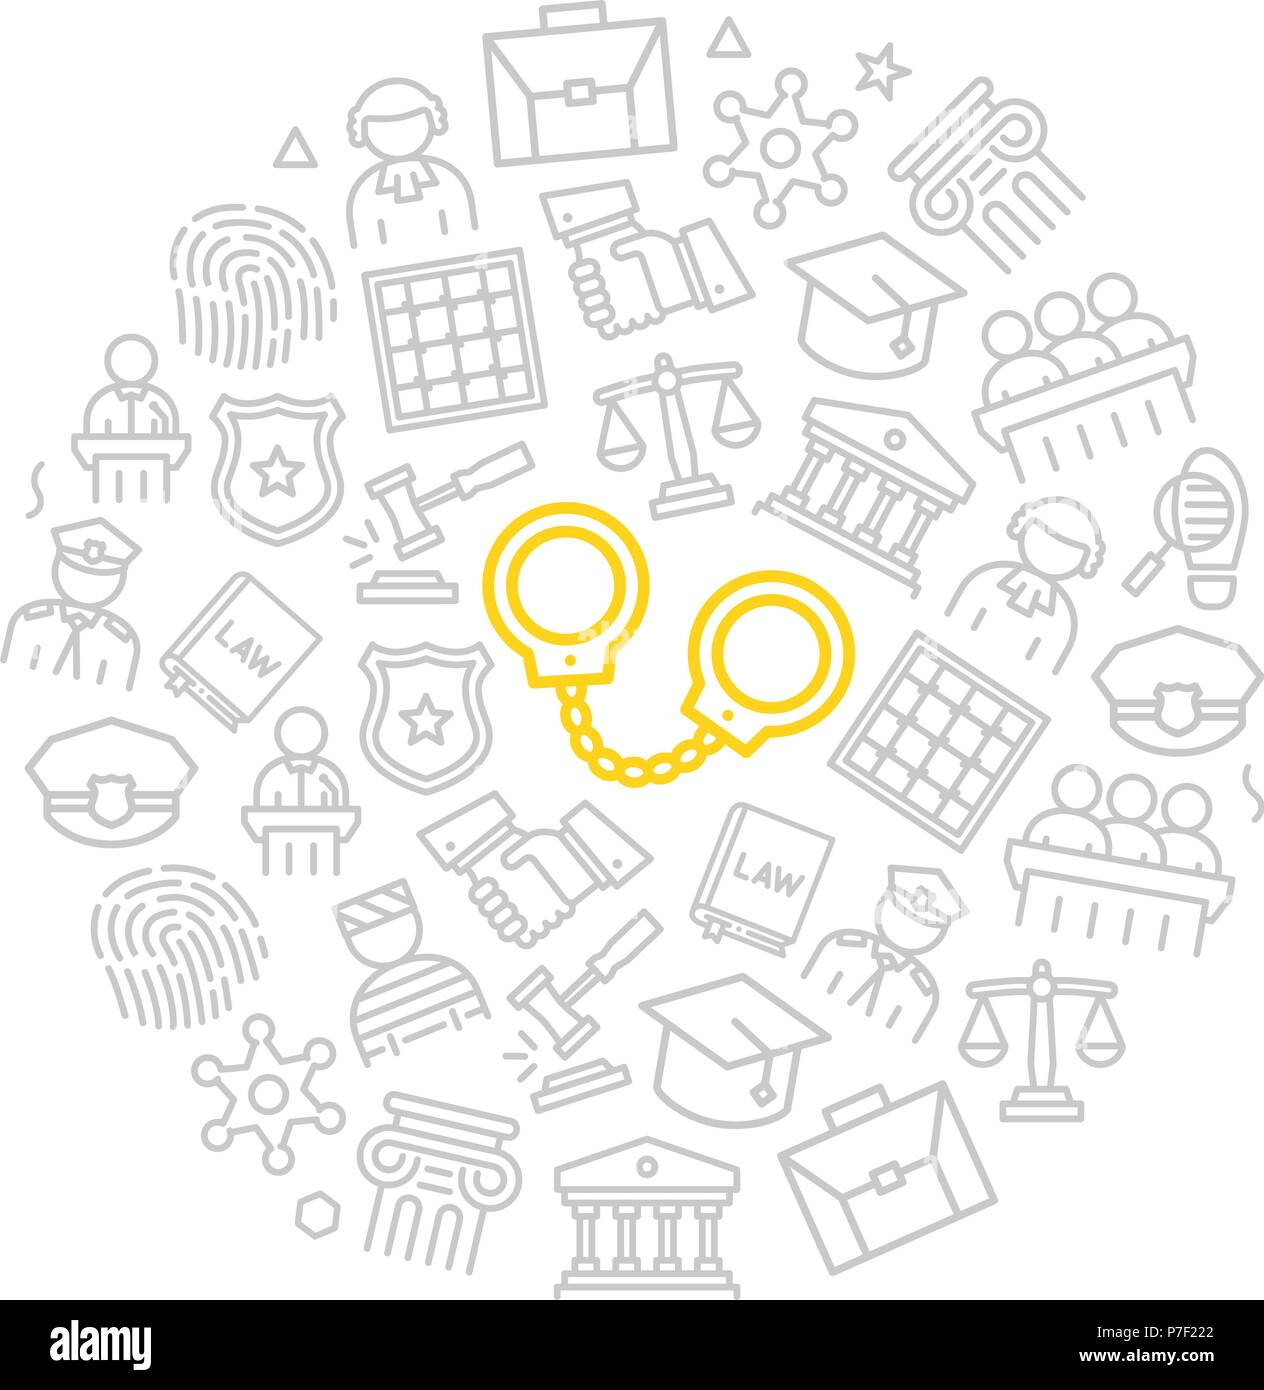 Set of vector crime, law, police and justice icons in circle design concept. Illustration for presentations on white background - Stock Vector